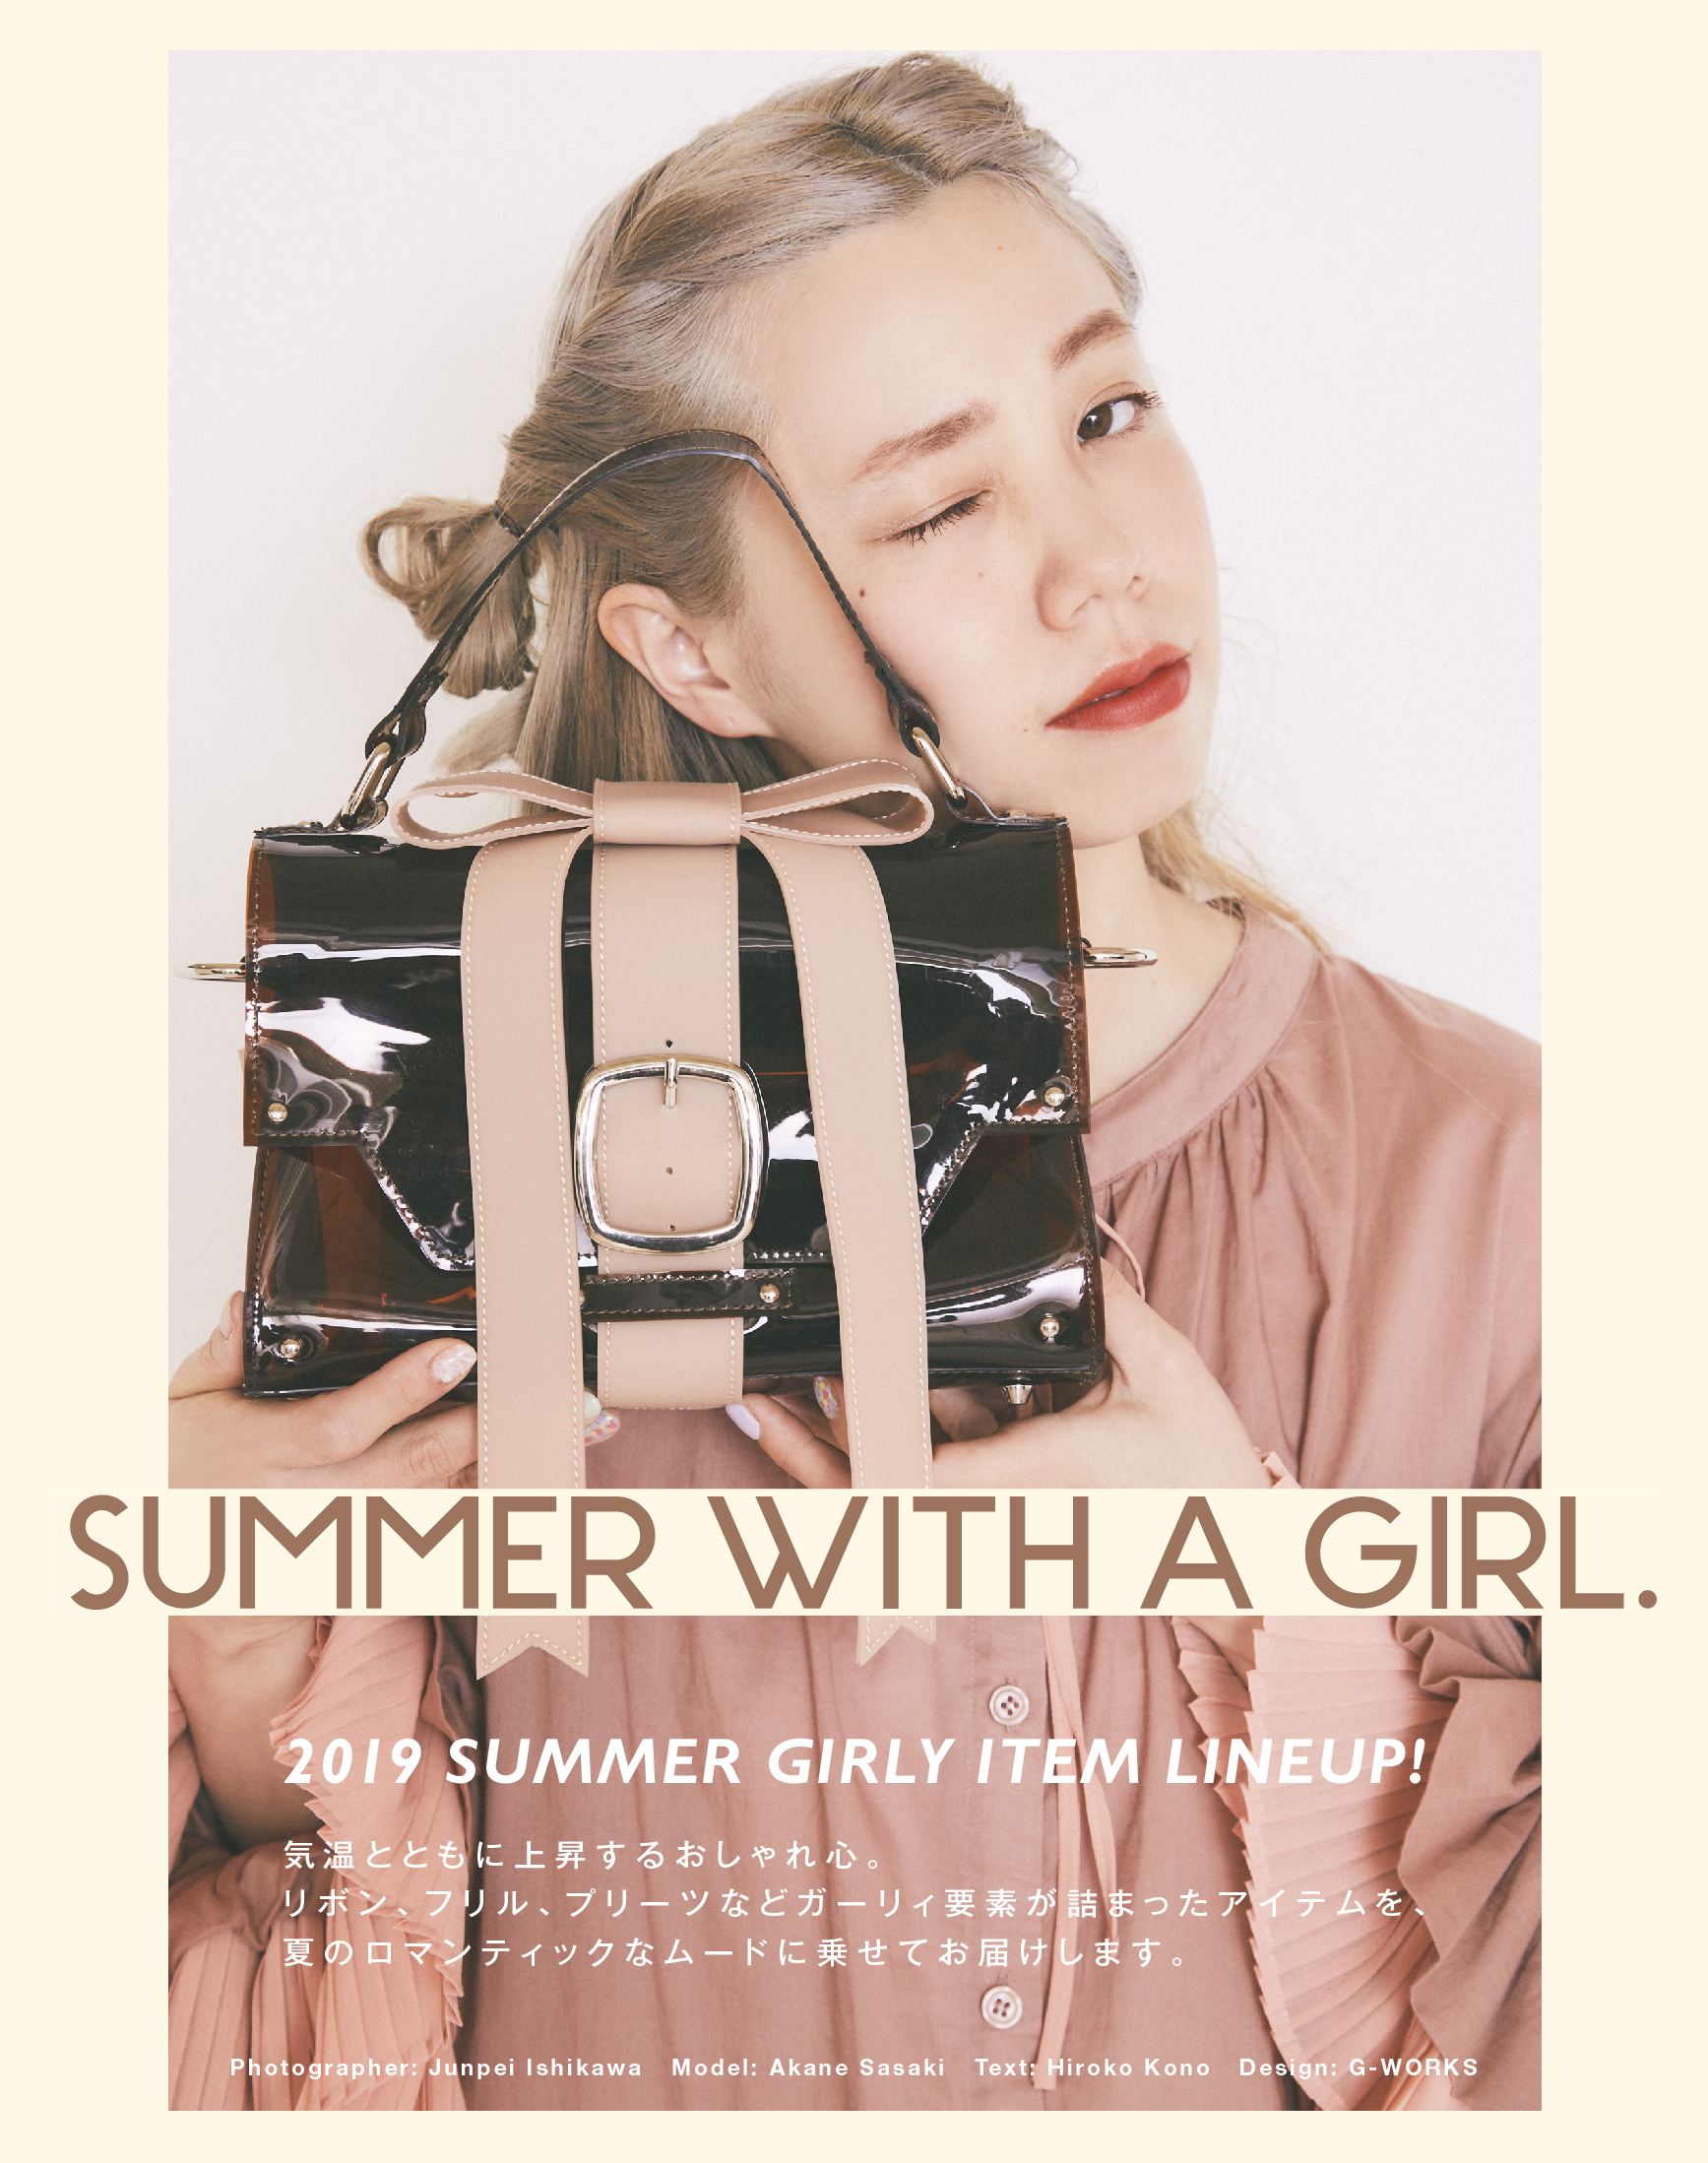 SUMMER WITH A GIRL